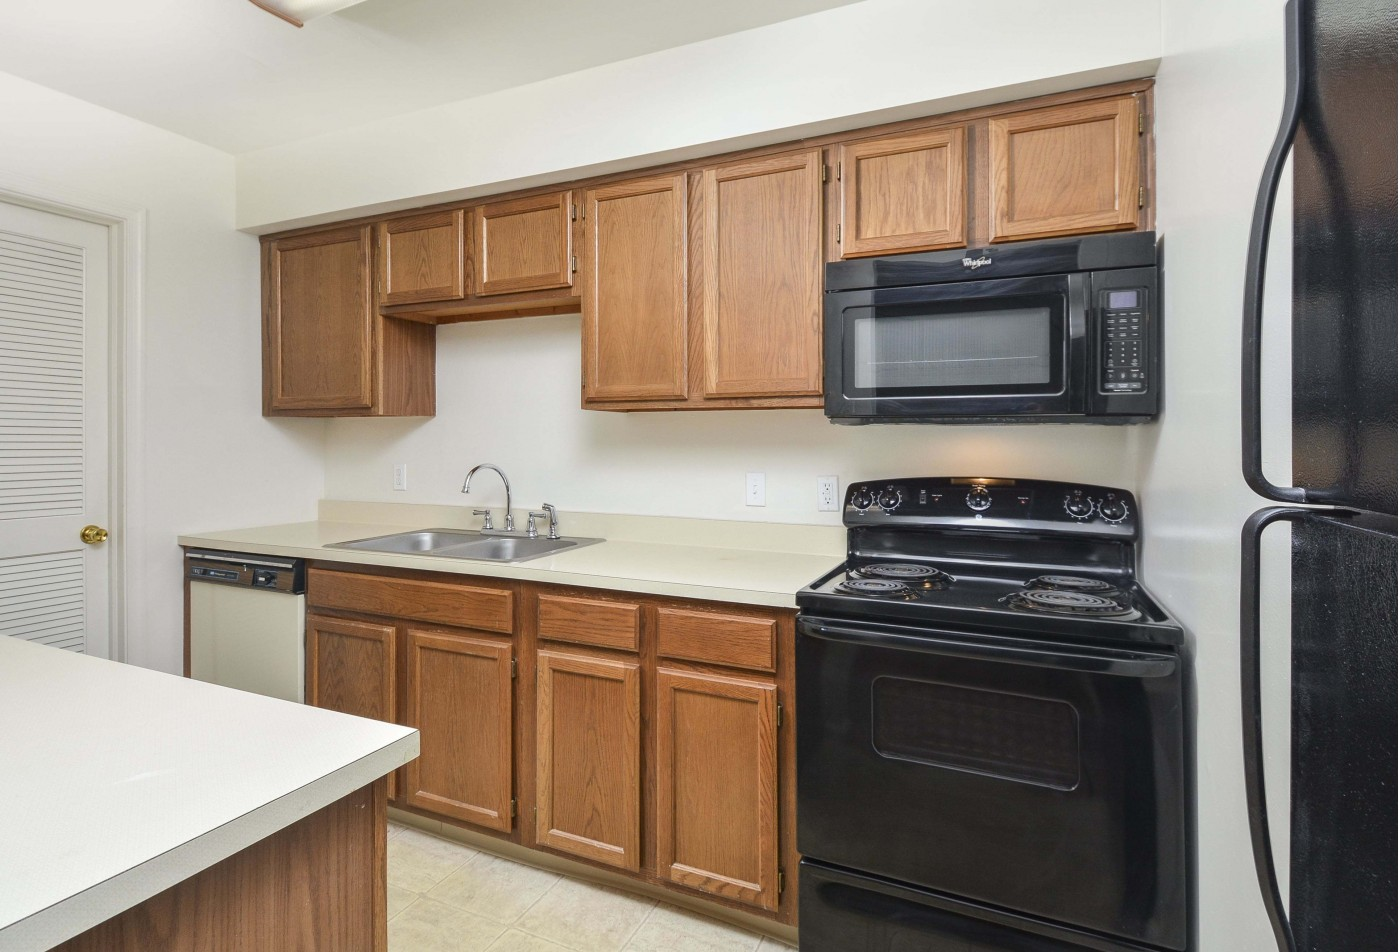 Spacious Master Bedroom | Apartments For Rent Wyomissing PA | Victoria Crossing Apartments